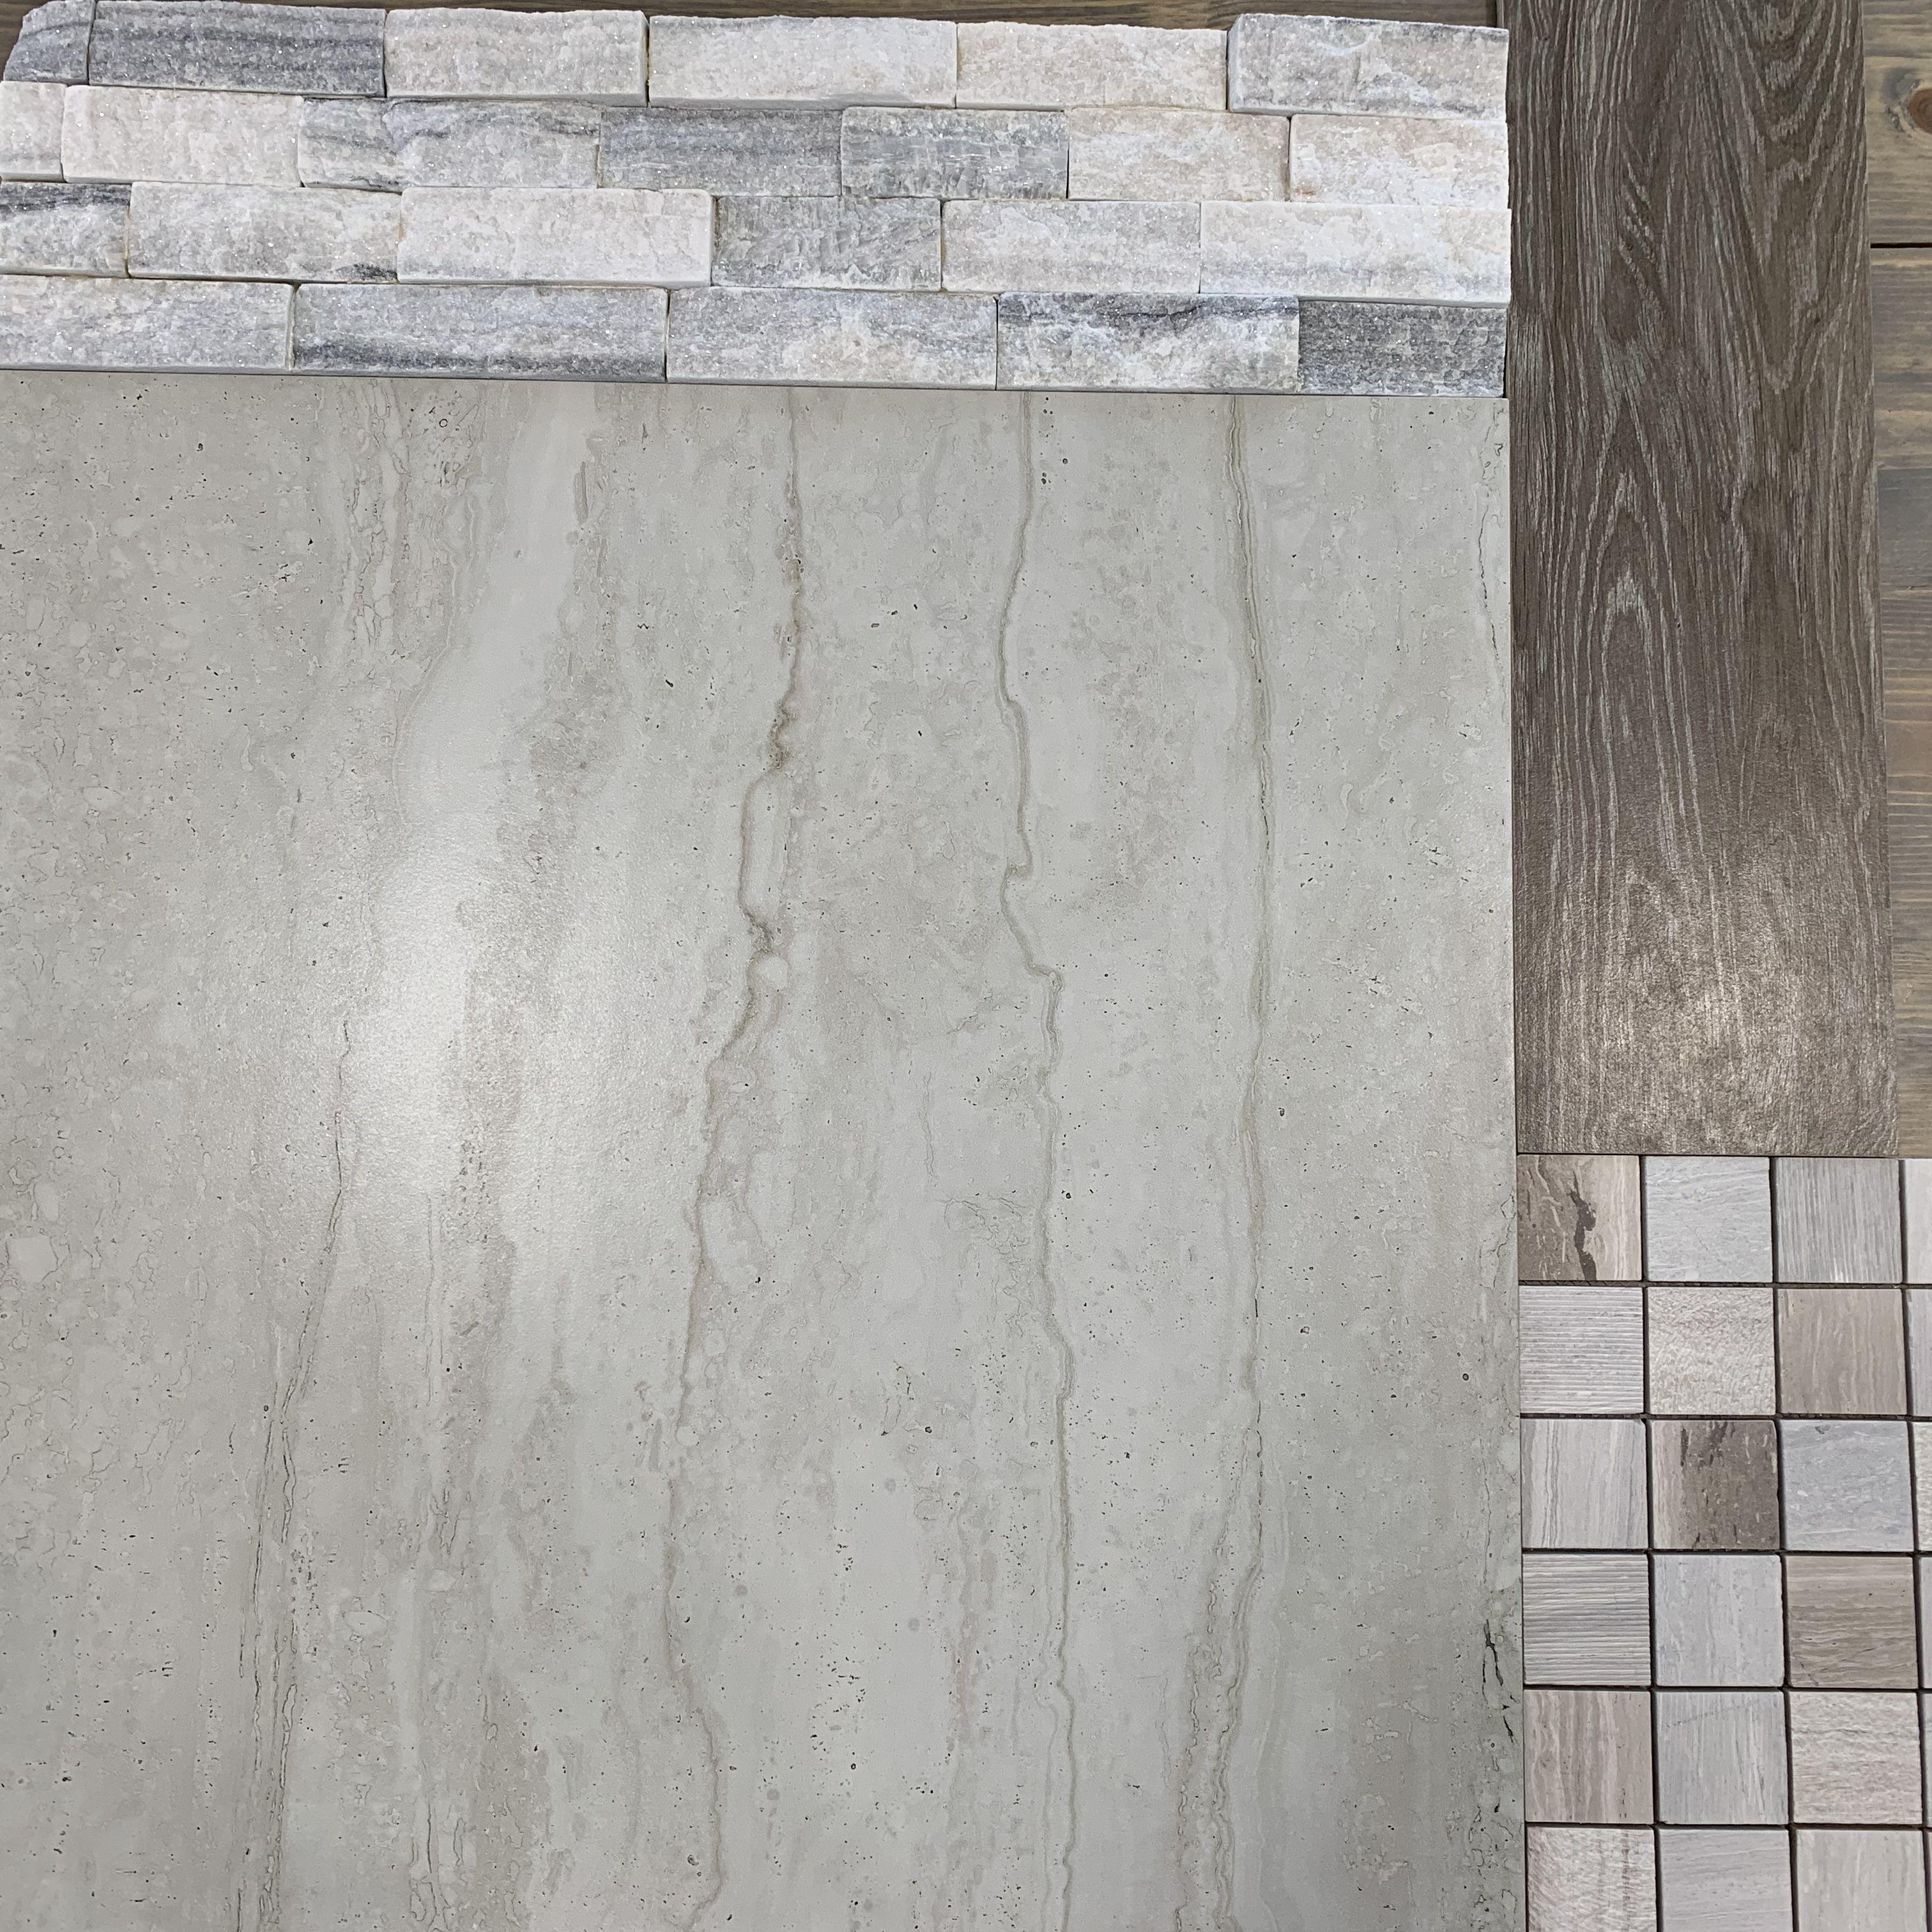 Tile of the week and this one is incredible! Could you see